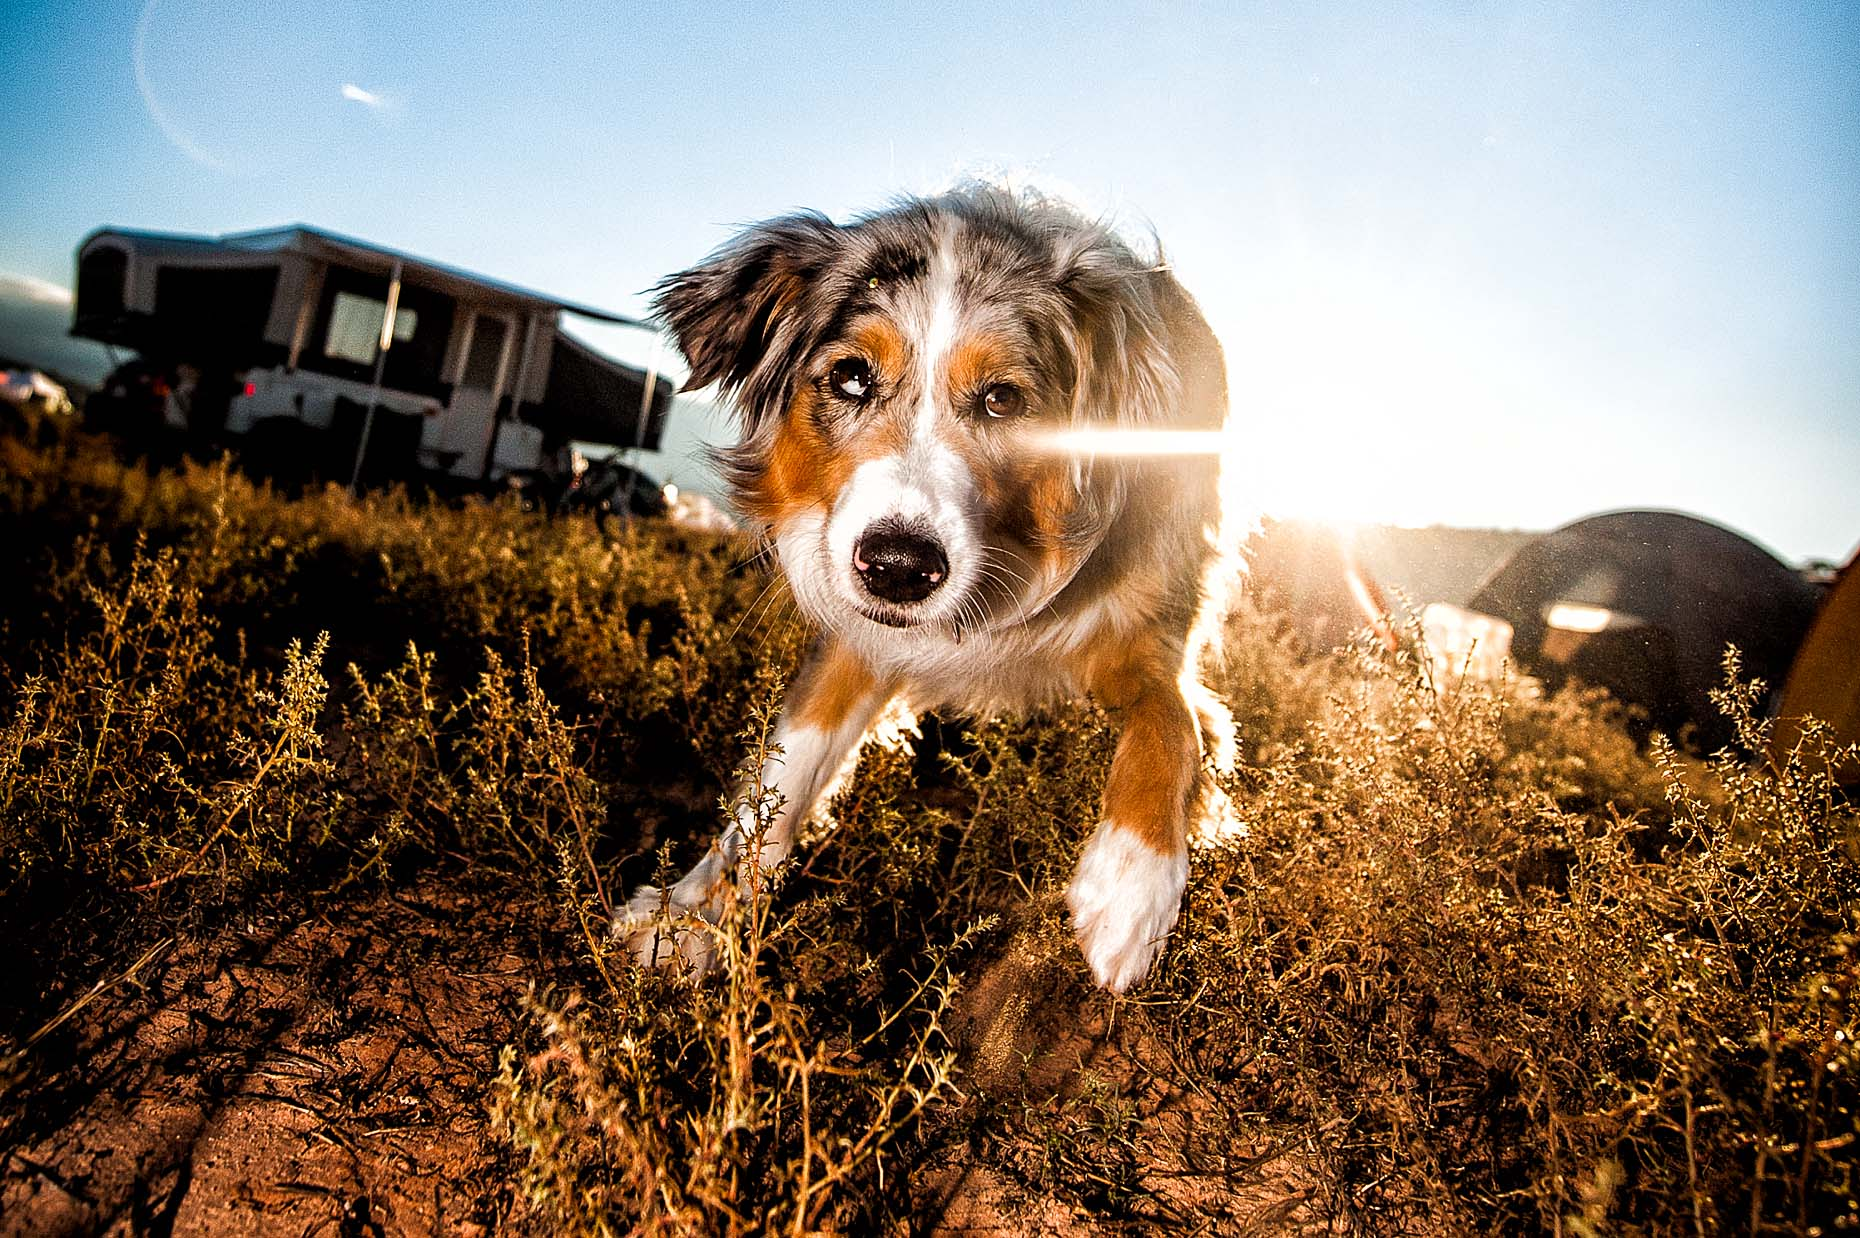 aaron-ingrao-dog-24-hours-moab-sunflair